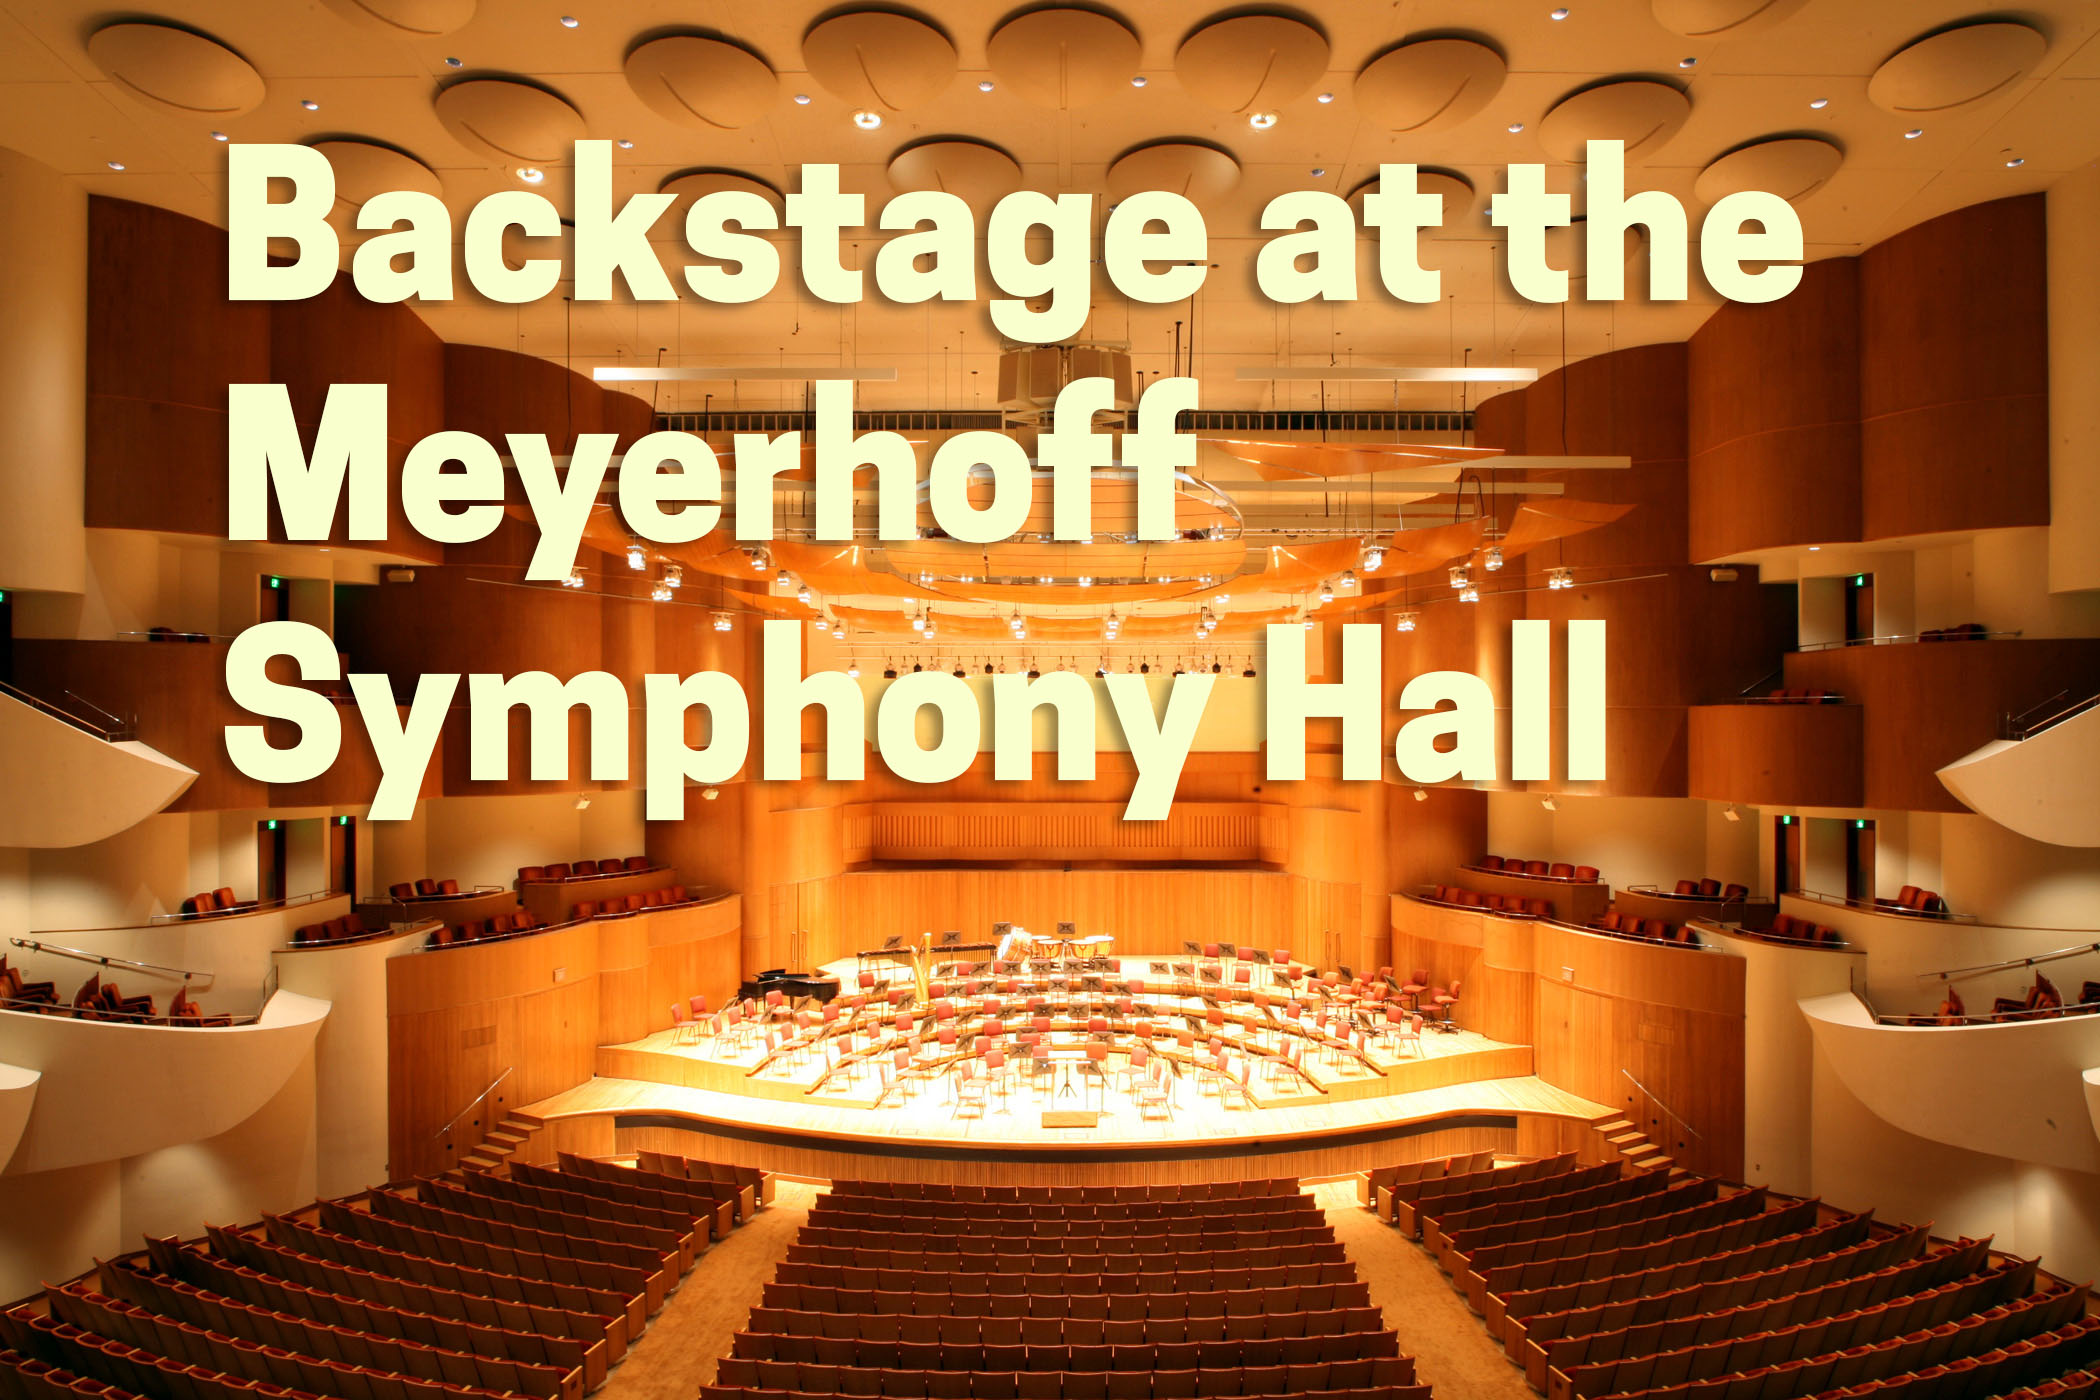 Interior view of the Meyerhoff Symphony Hall.